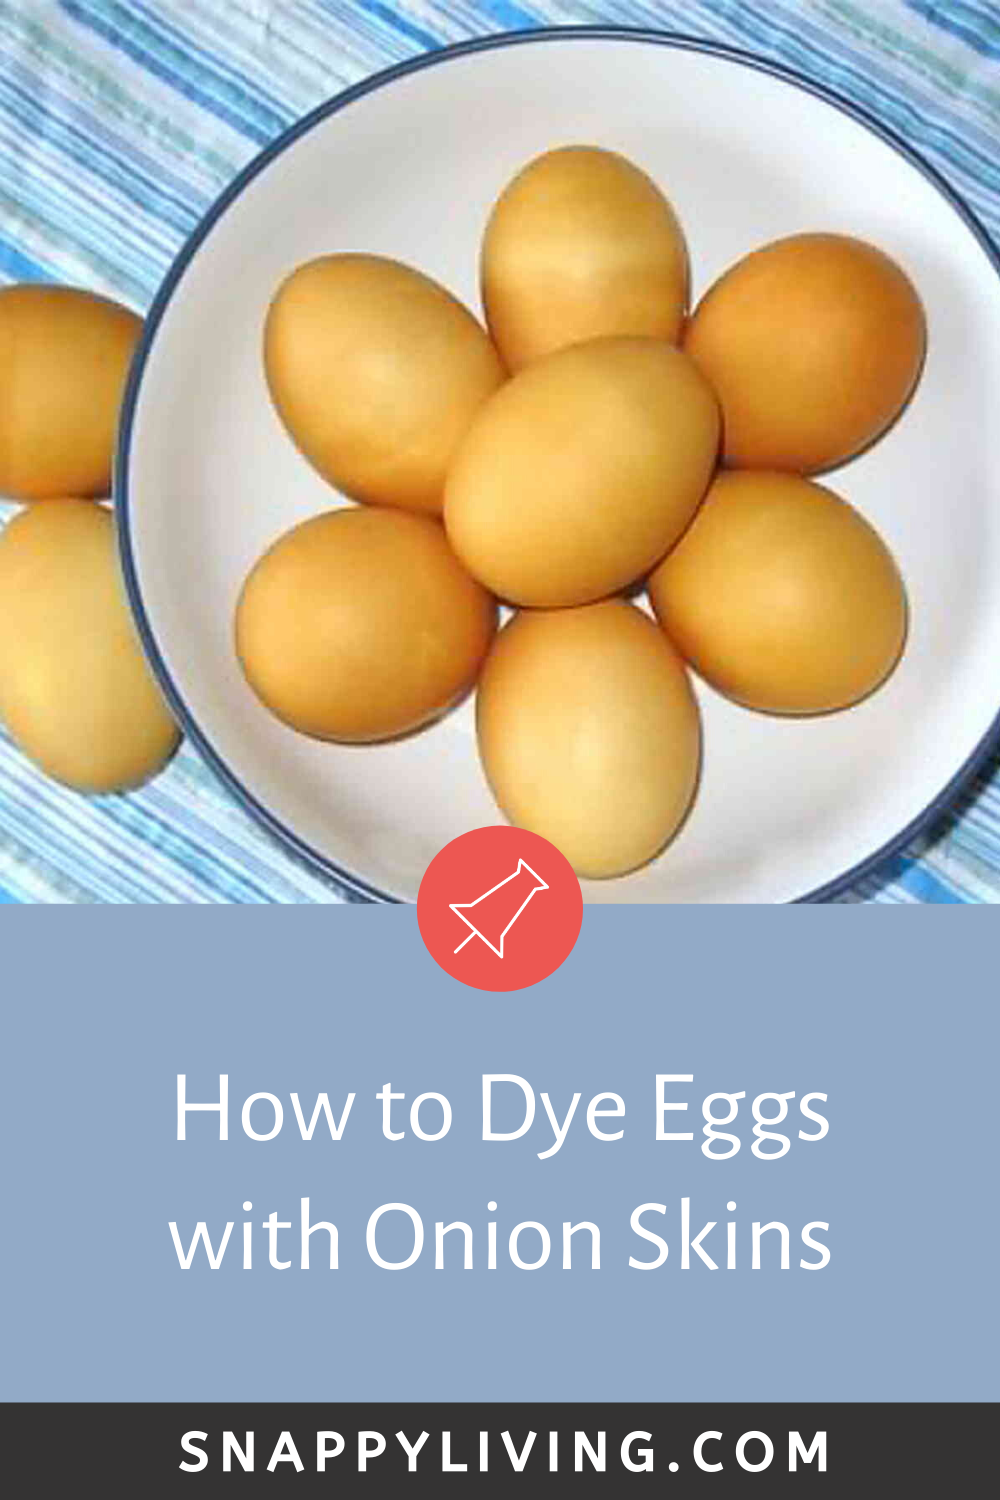 How To Dye Eggs With Onion Skins Snappy Living In 2020 Natural Health Tips Eggs Egg Dye